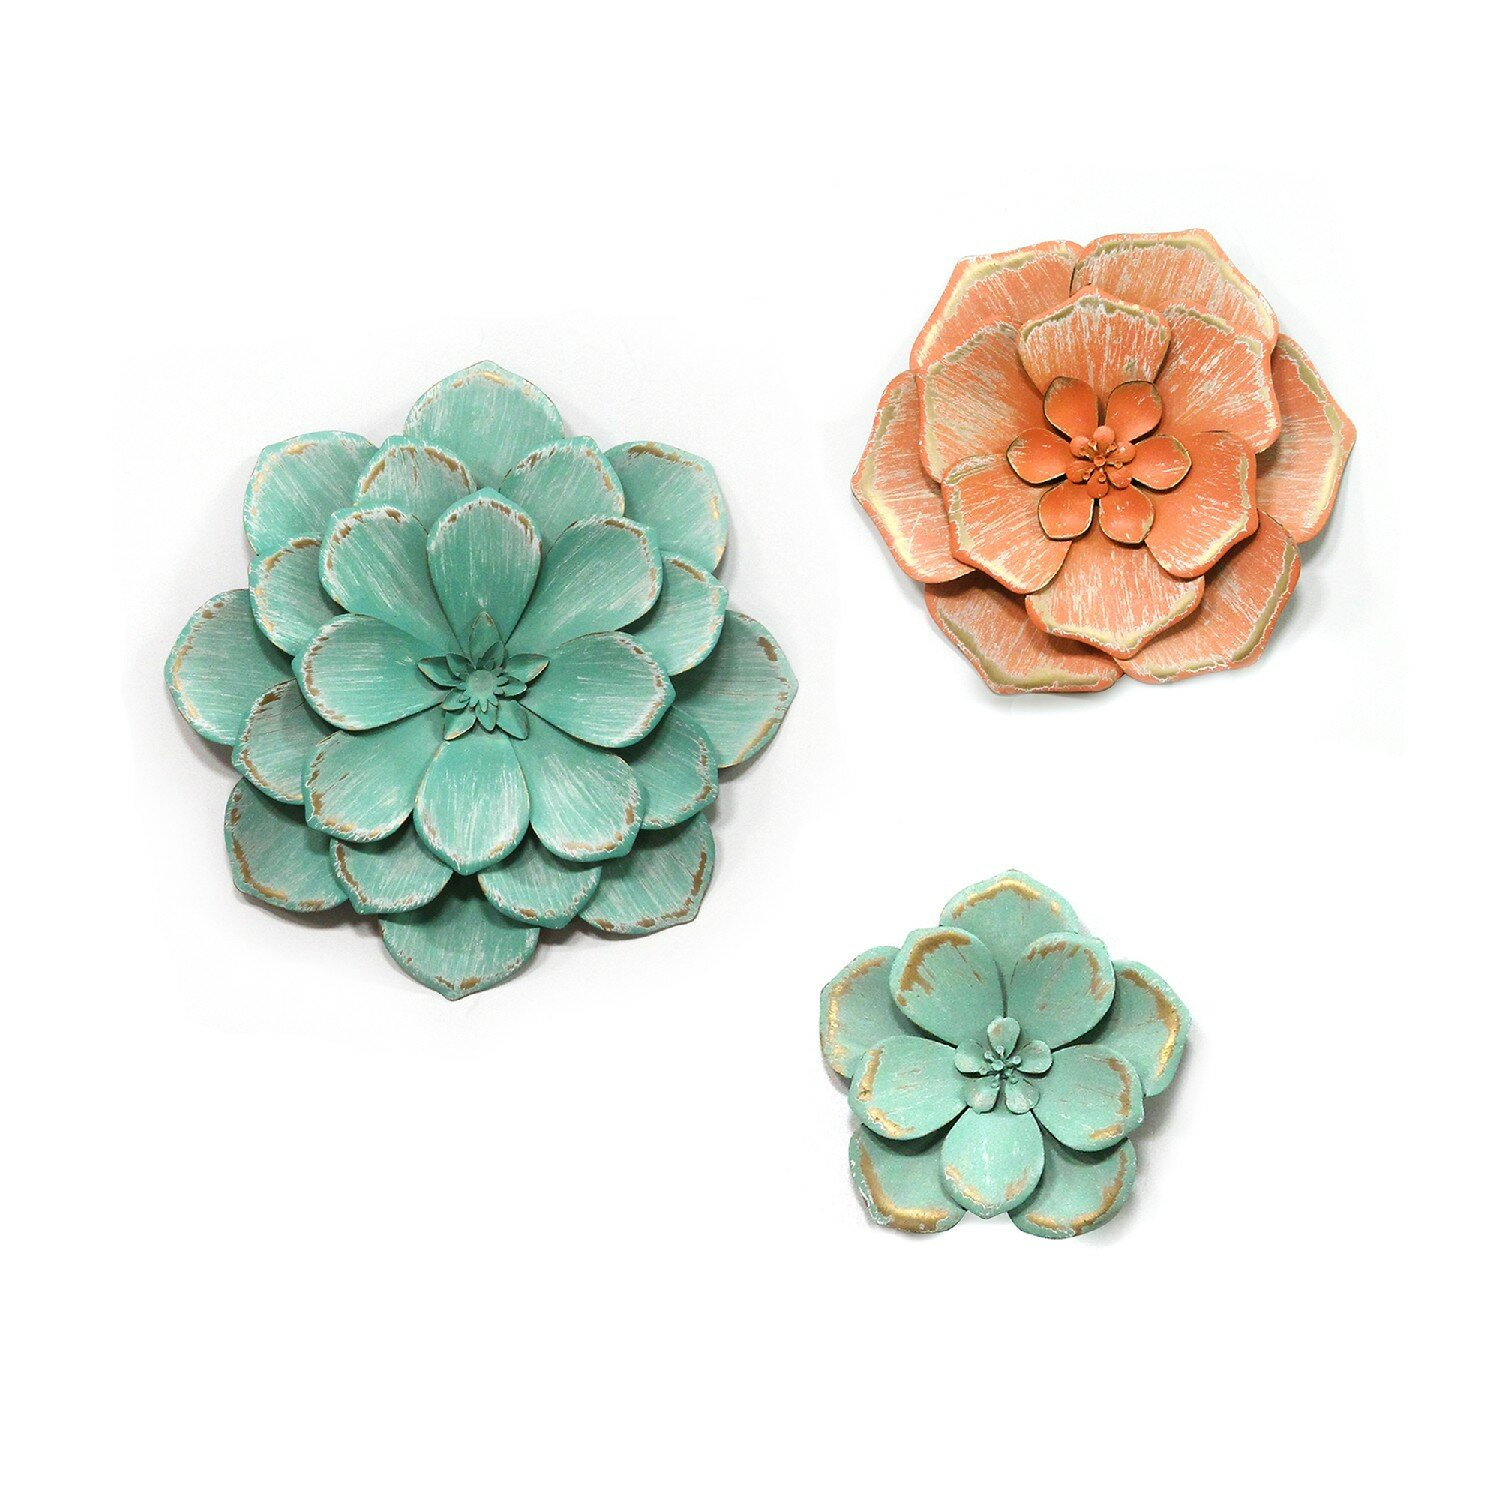 Large Flower Wall Decor | Wayfair with 3 Piece Ceramic Flowers Wall Decor Sets (Image 24 of 30)